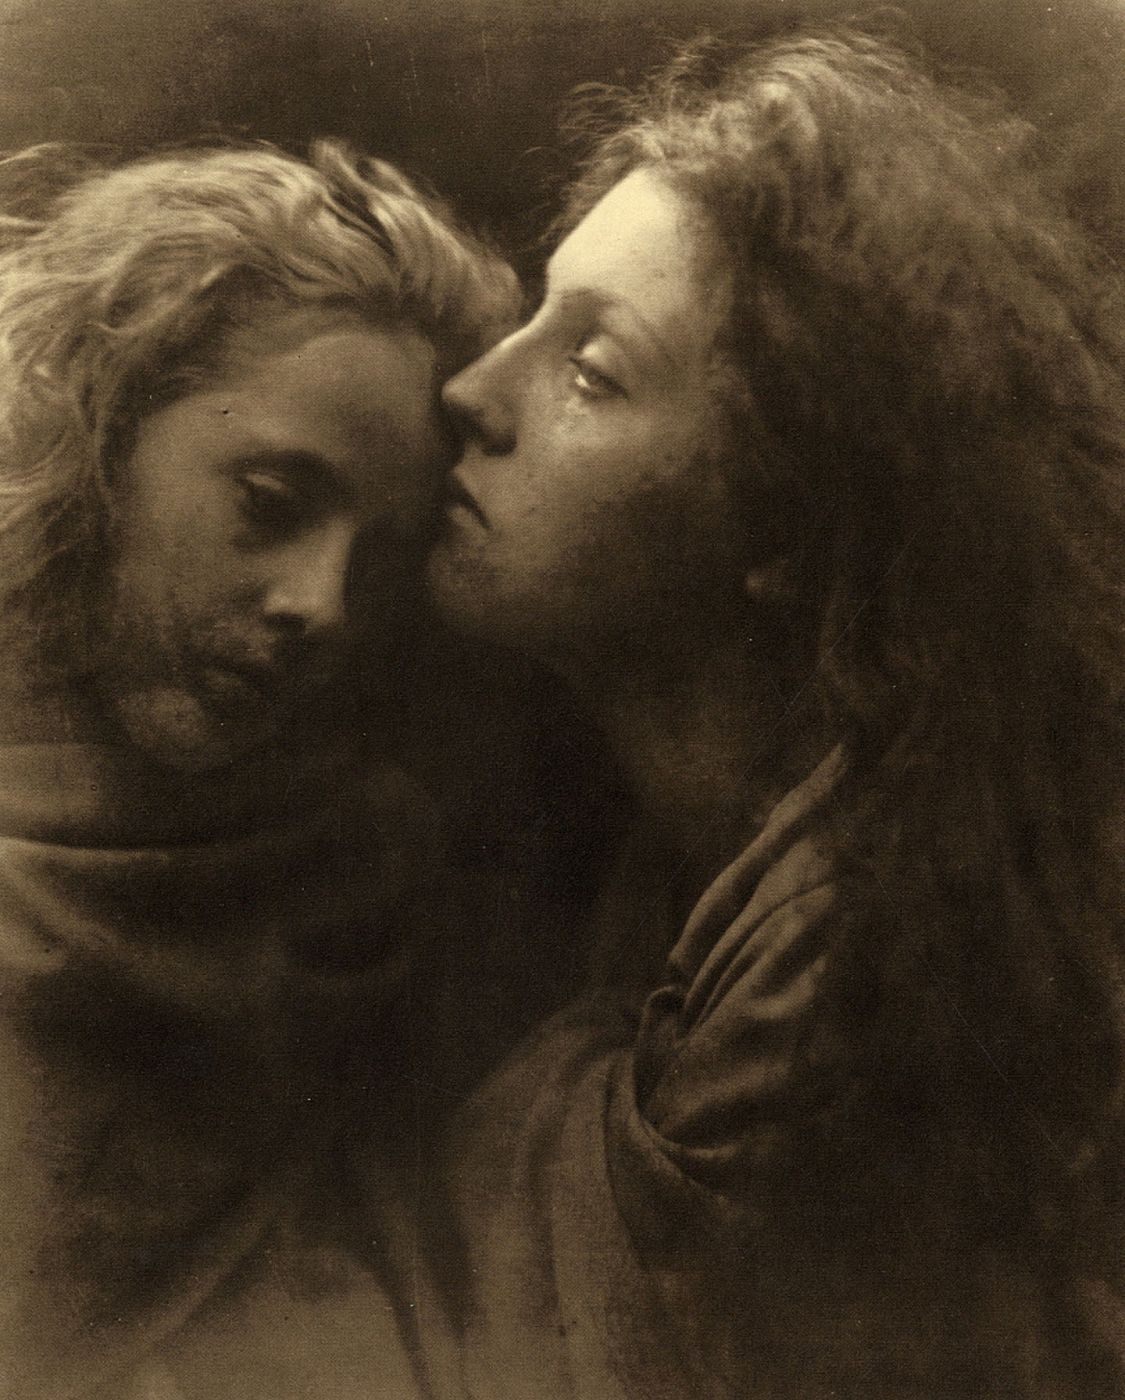 Whisper of the Muse: The Overstone Album & Other Photographs by Julia Margaret Cameron